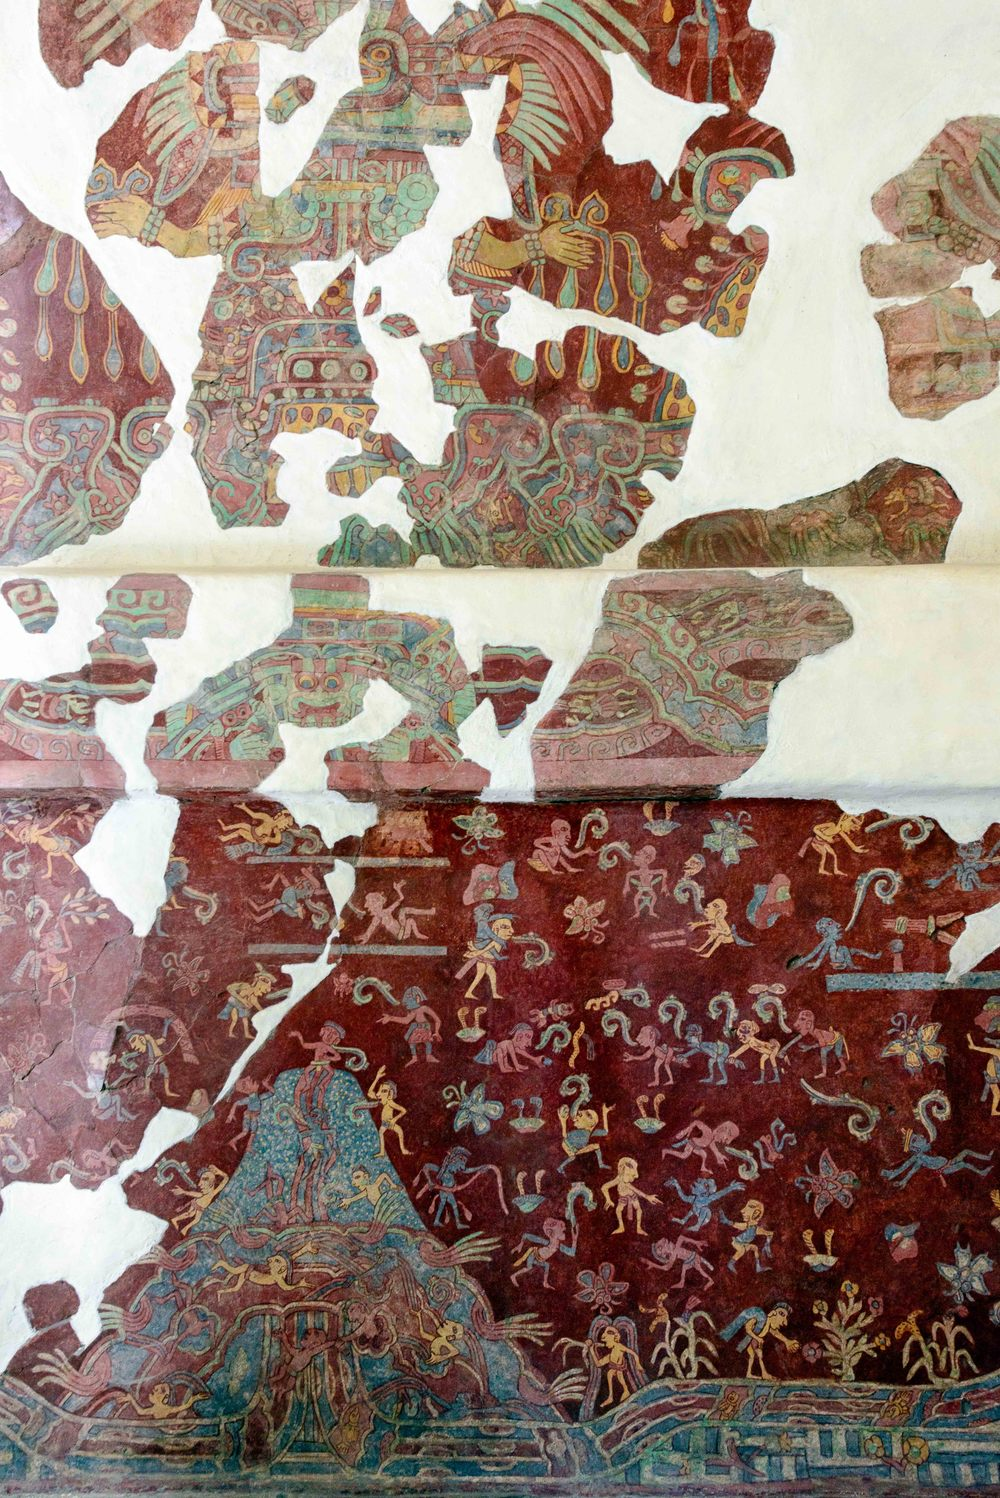 Mural from the Tepantitla compound showing what has been identified as an aspect of the Great Goddess of Teotihuacan (on top).